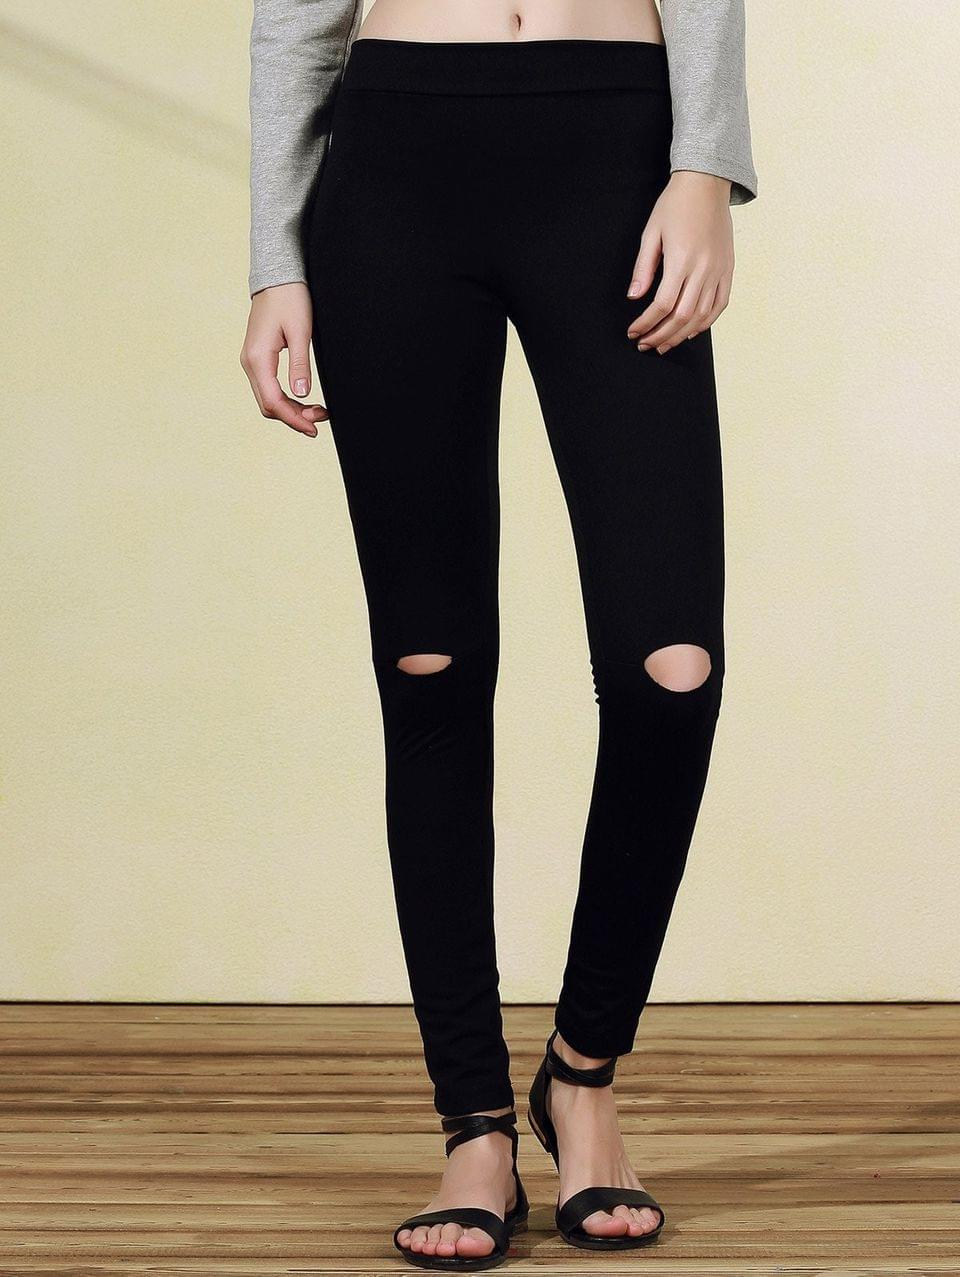 Women's Ripped Casual Black Narrow Feet Pants - Black 2xl